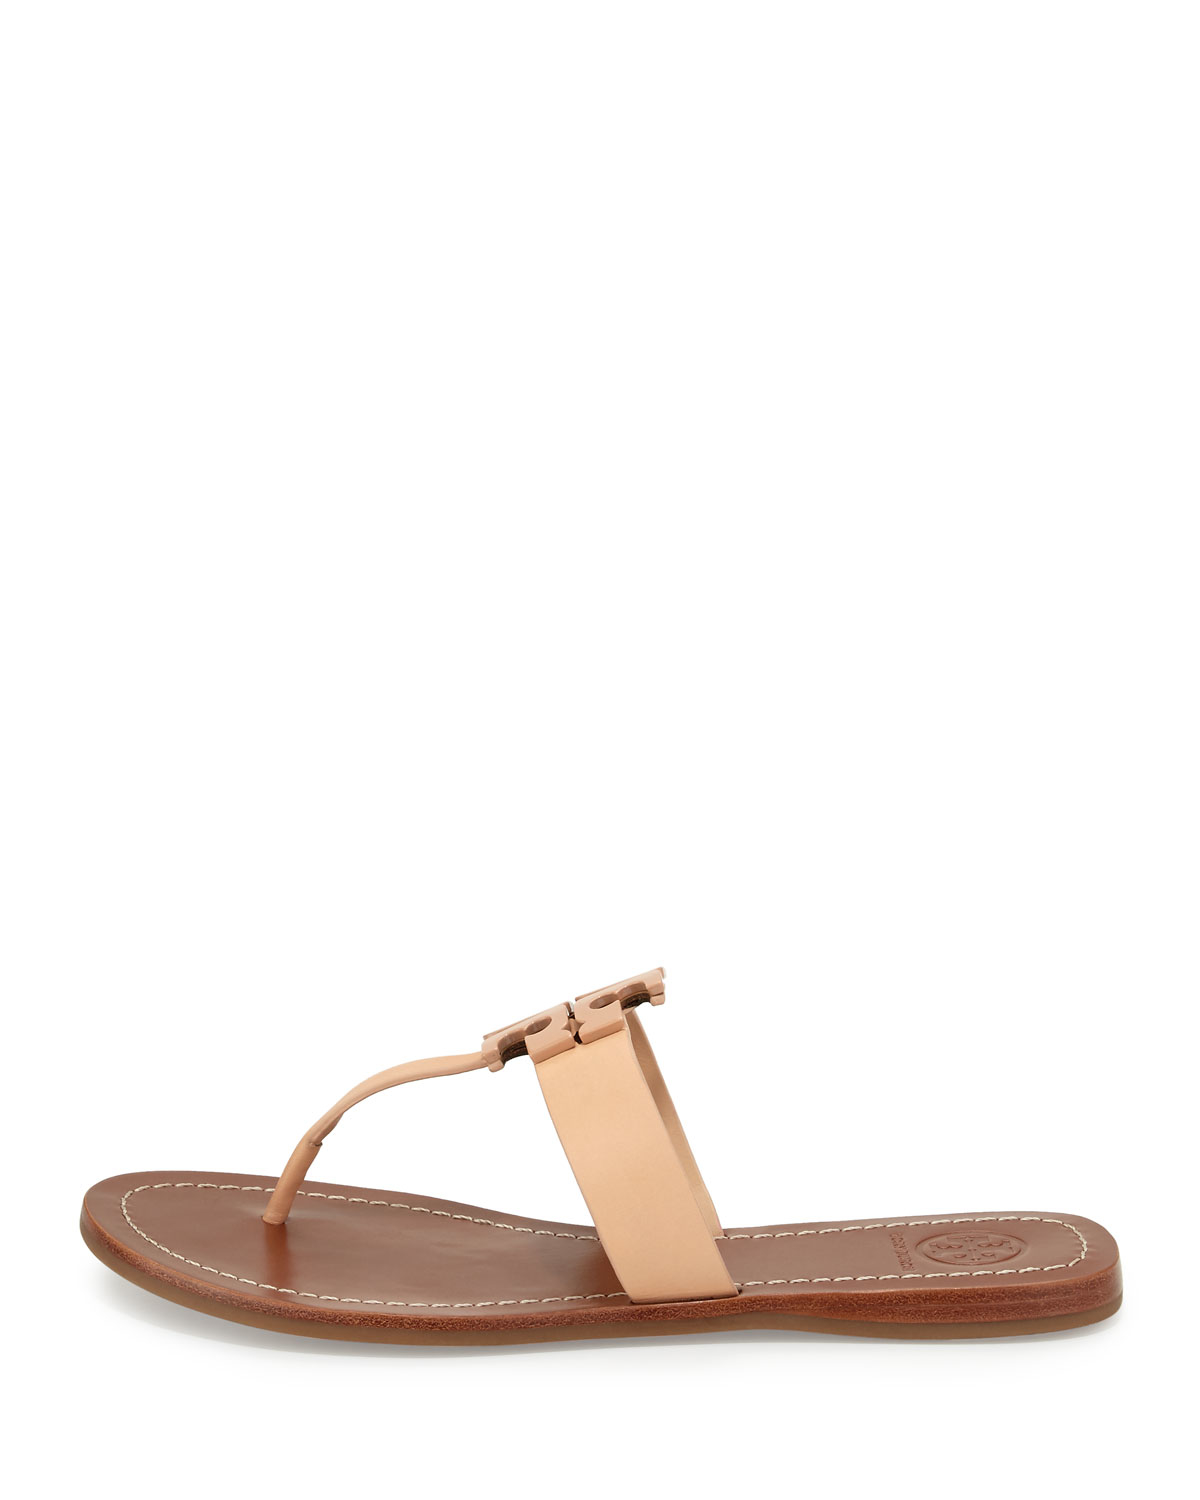 8c694b2bdf33 Lyst - Tory Burch Moore 2 Leather Thong Sandals in Natural